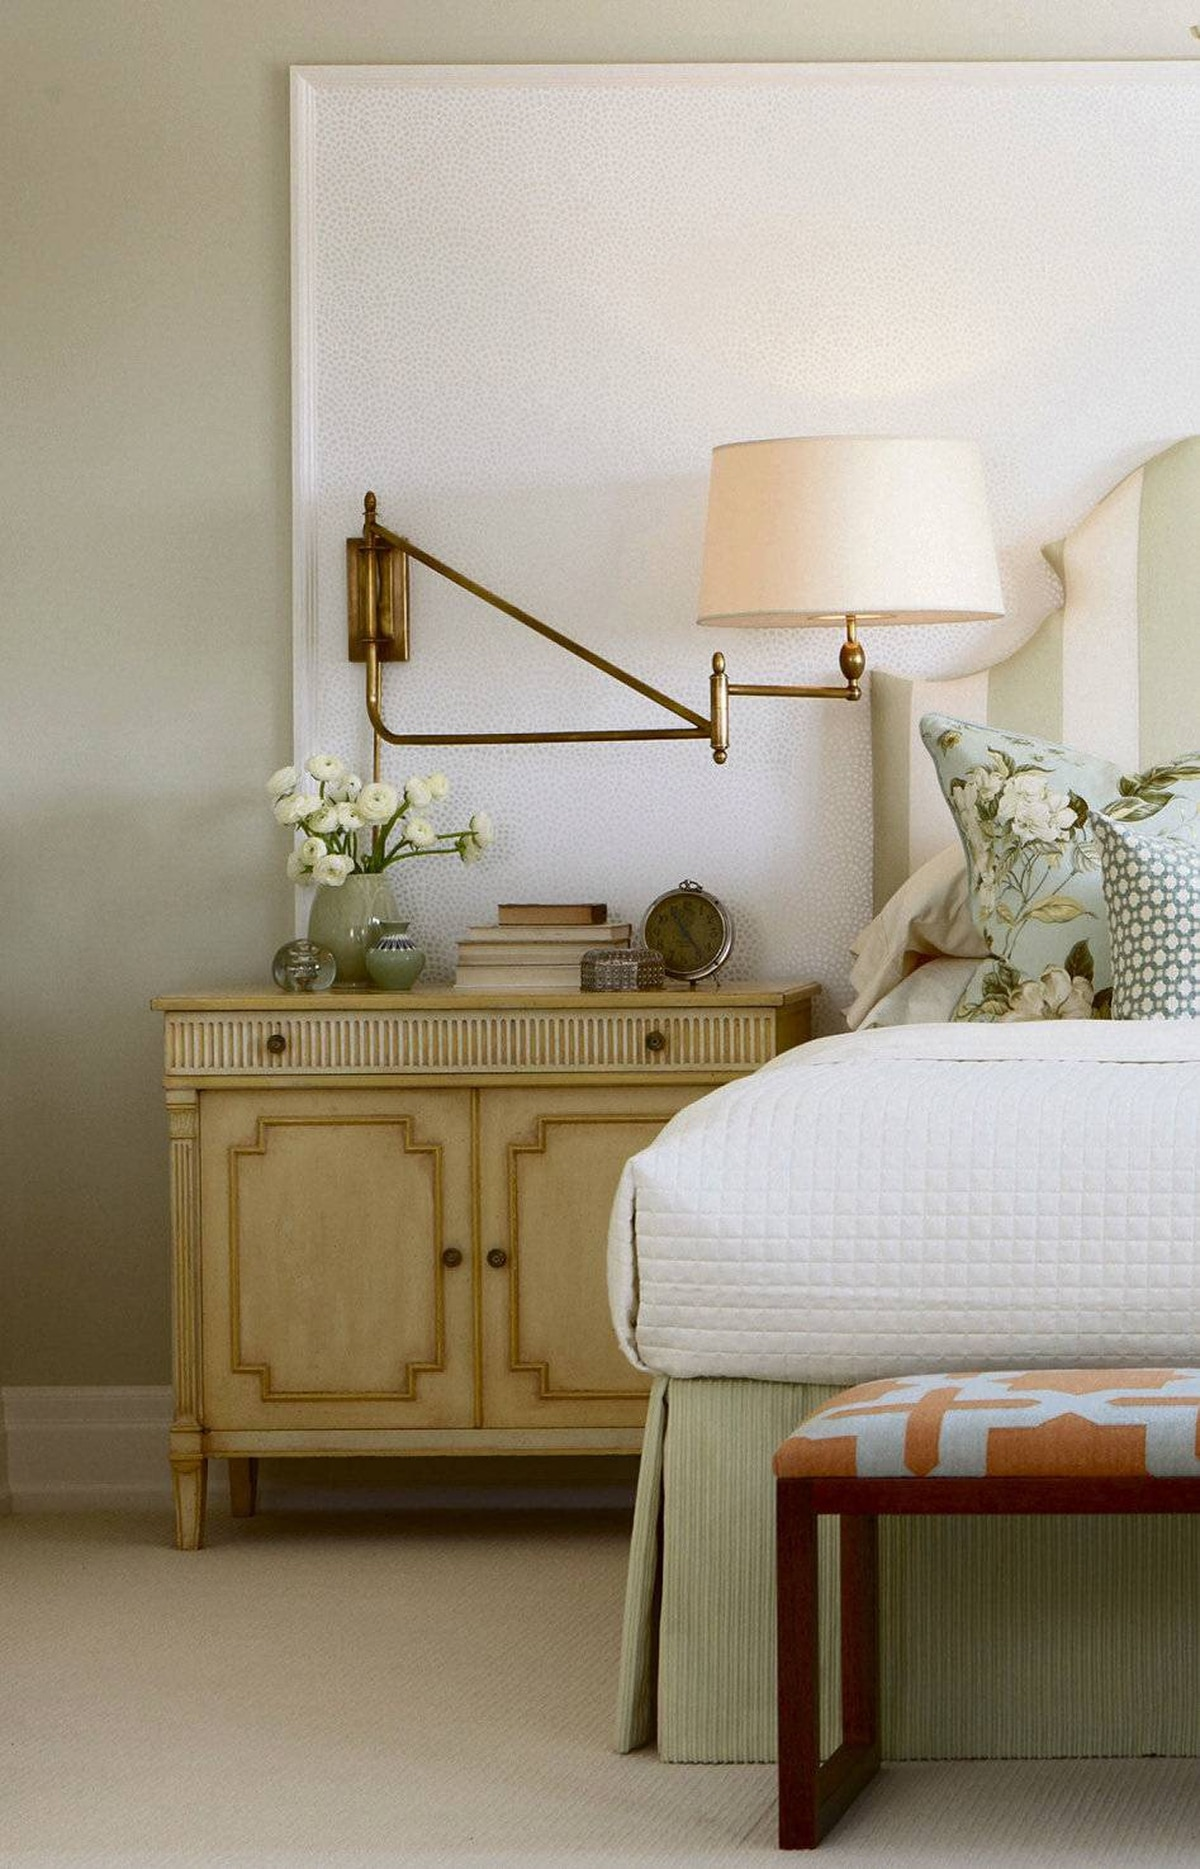 LEND IMPACT TO A BARE WALL Install a simple trim profile to create an oversized panel and then apply a decorative wallpaper. It's easier and cheaper than covering the entire wall and allows you to layer two shades against each other. Add a contemporary touch with over-scaled swing-arm lamps.